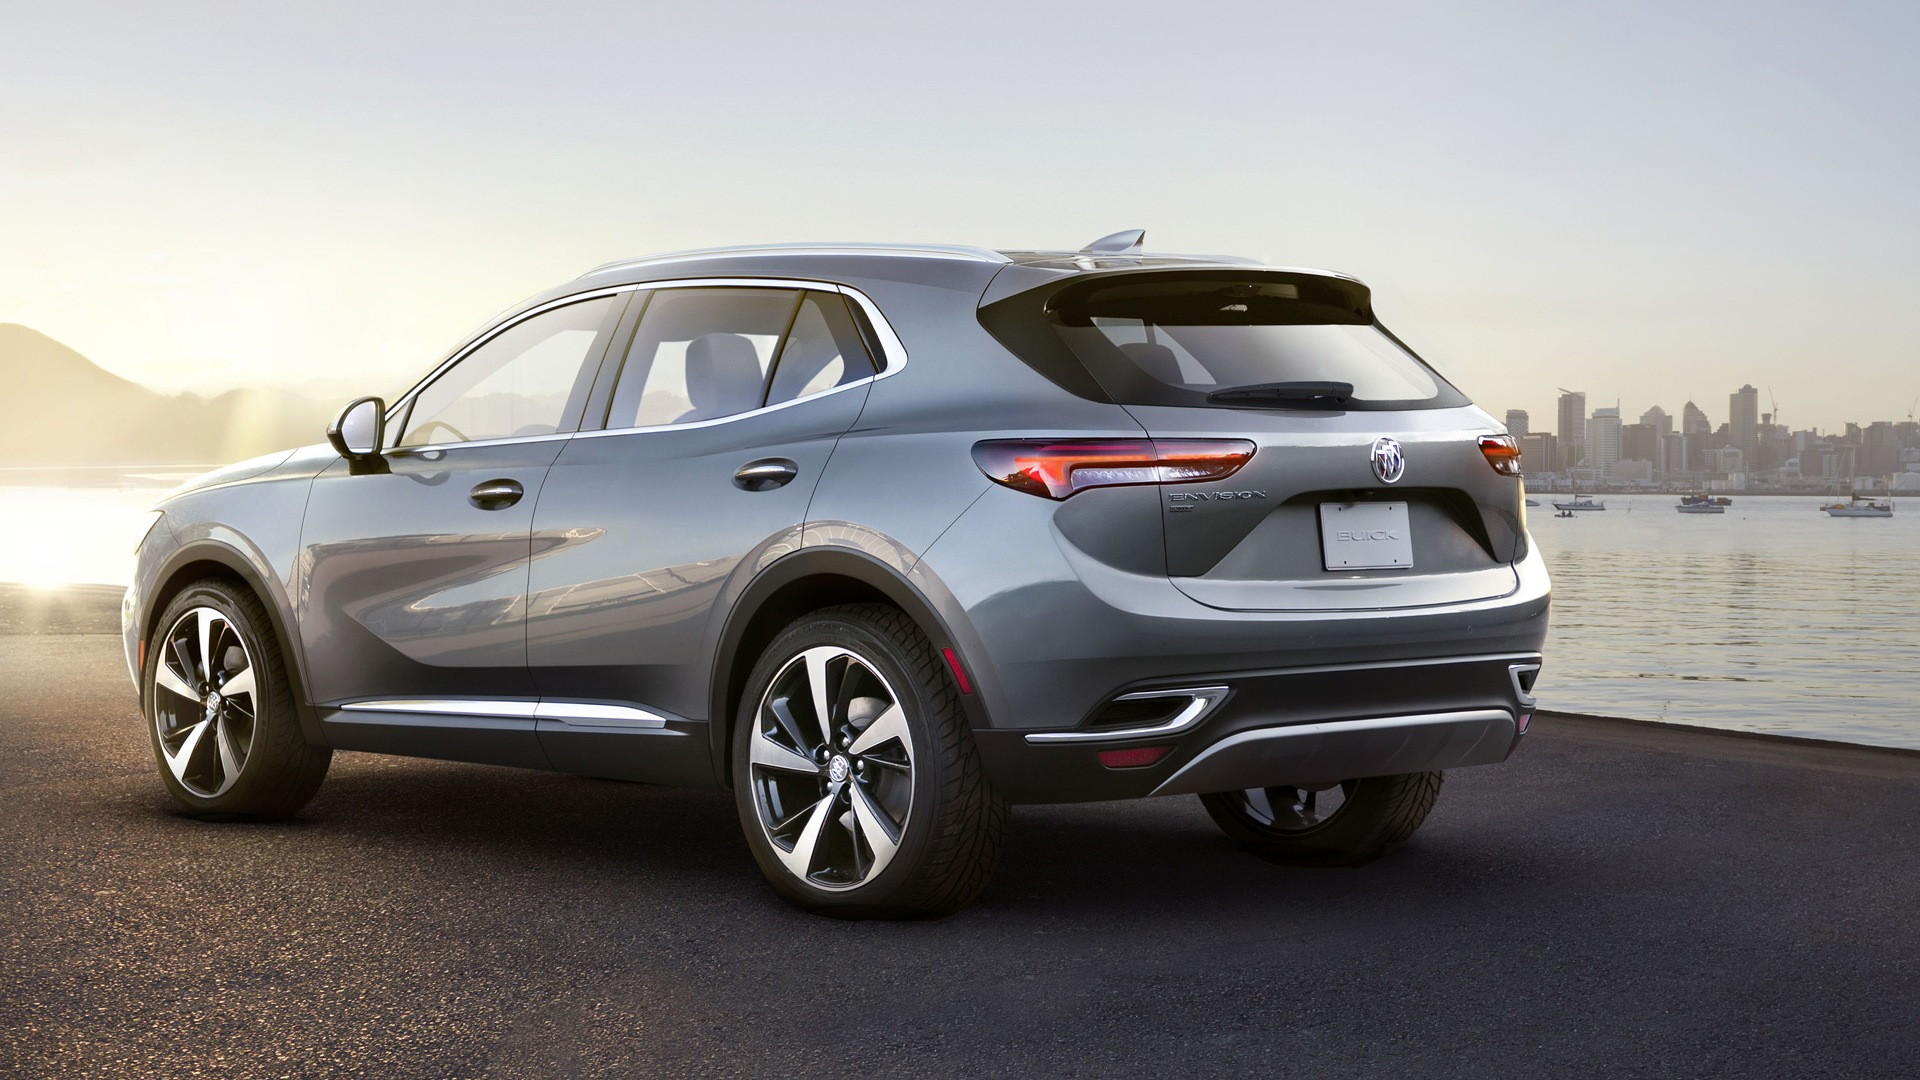 2021 Buick Envision Preview: Bold New Look For Buick's Small Suv Is The New 2022 Buick Envision A Good Car